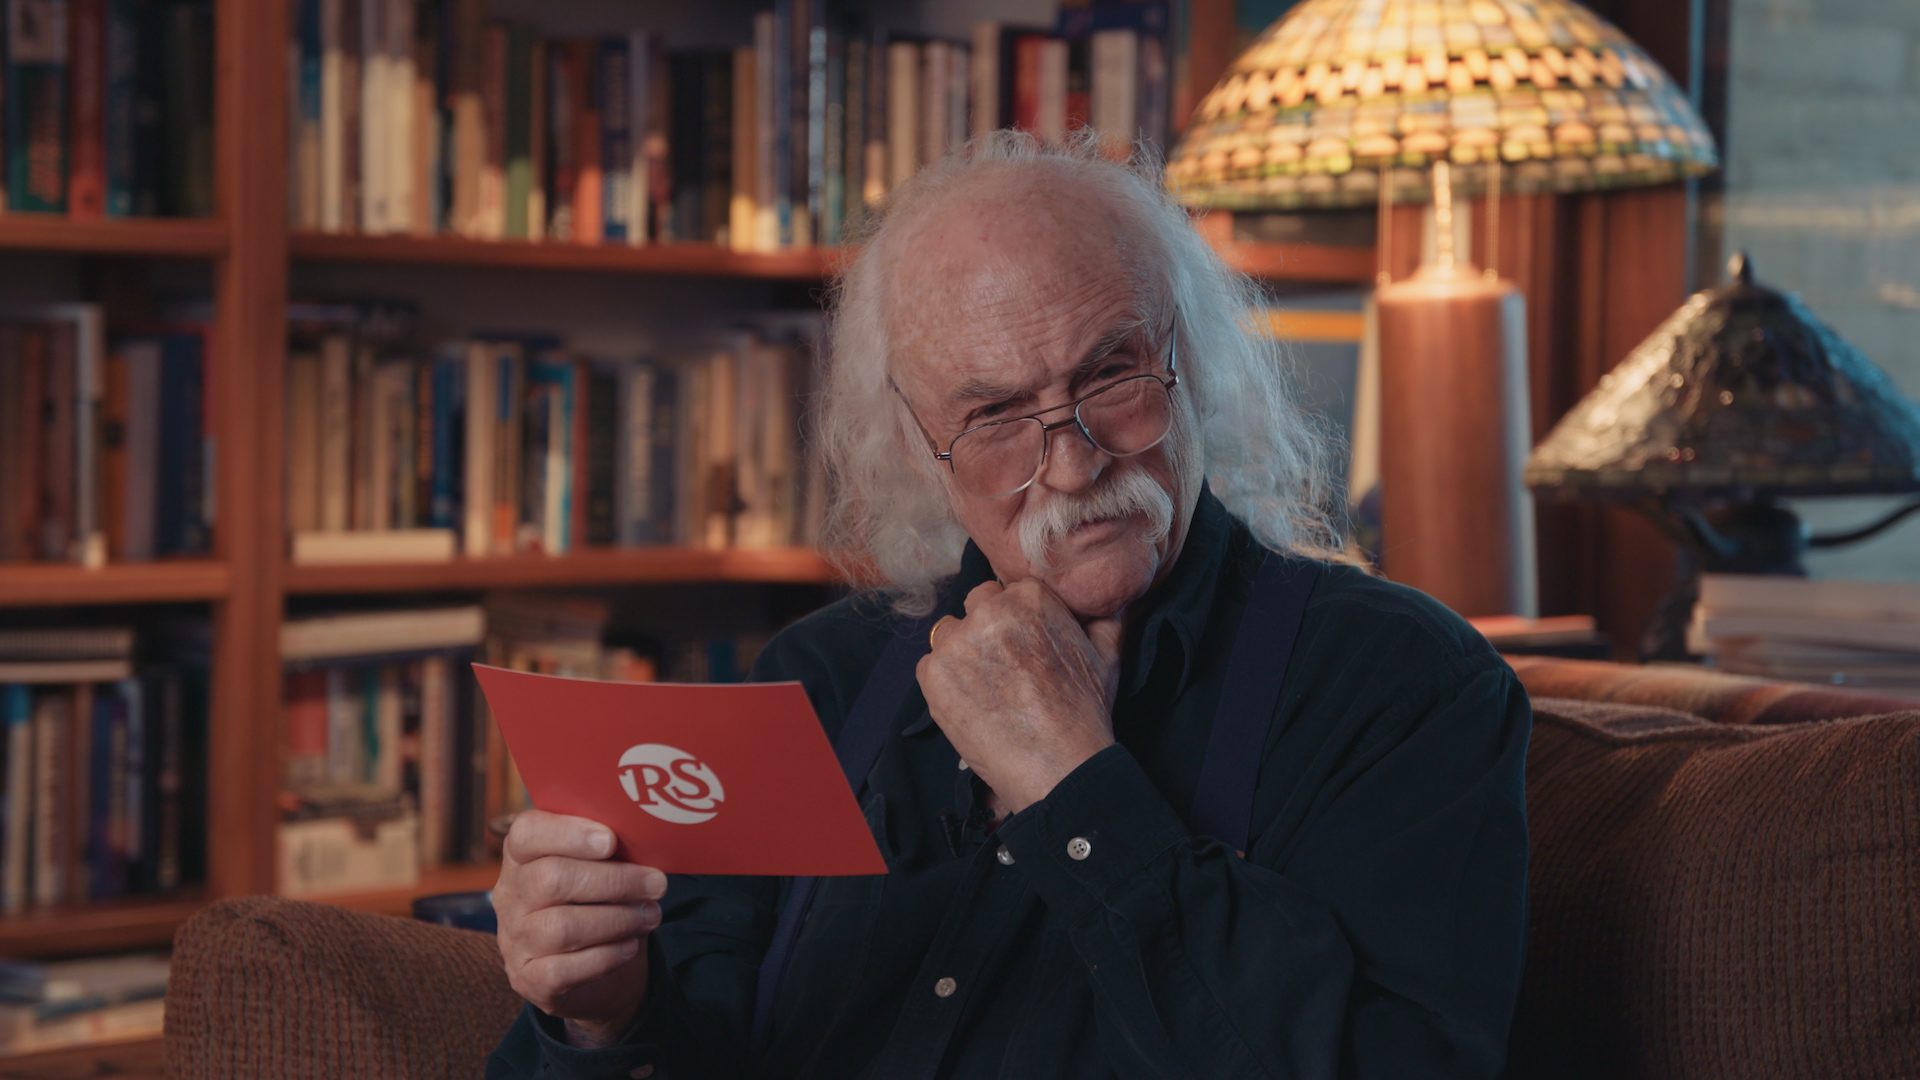 David Crosby Answers Your Questions About Divorce and Internet Addiction